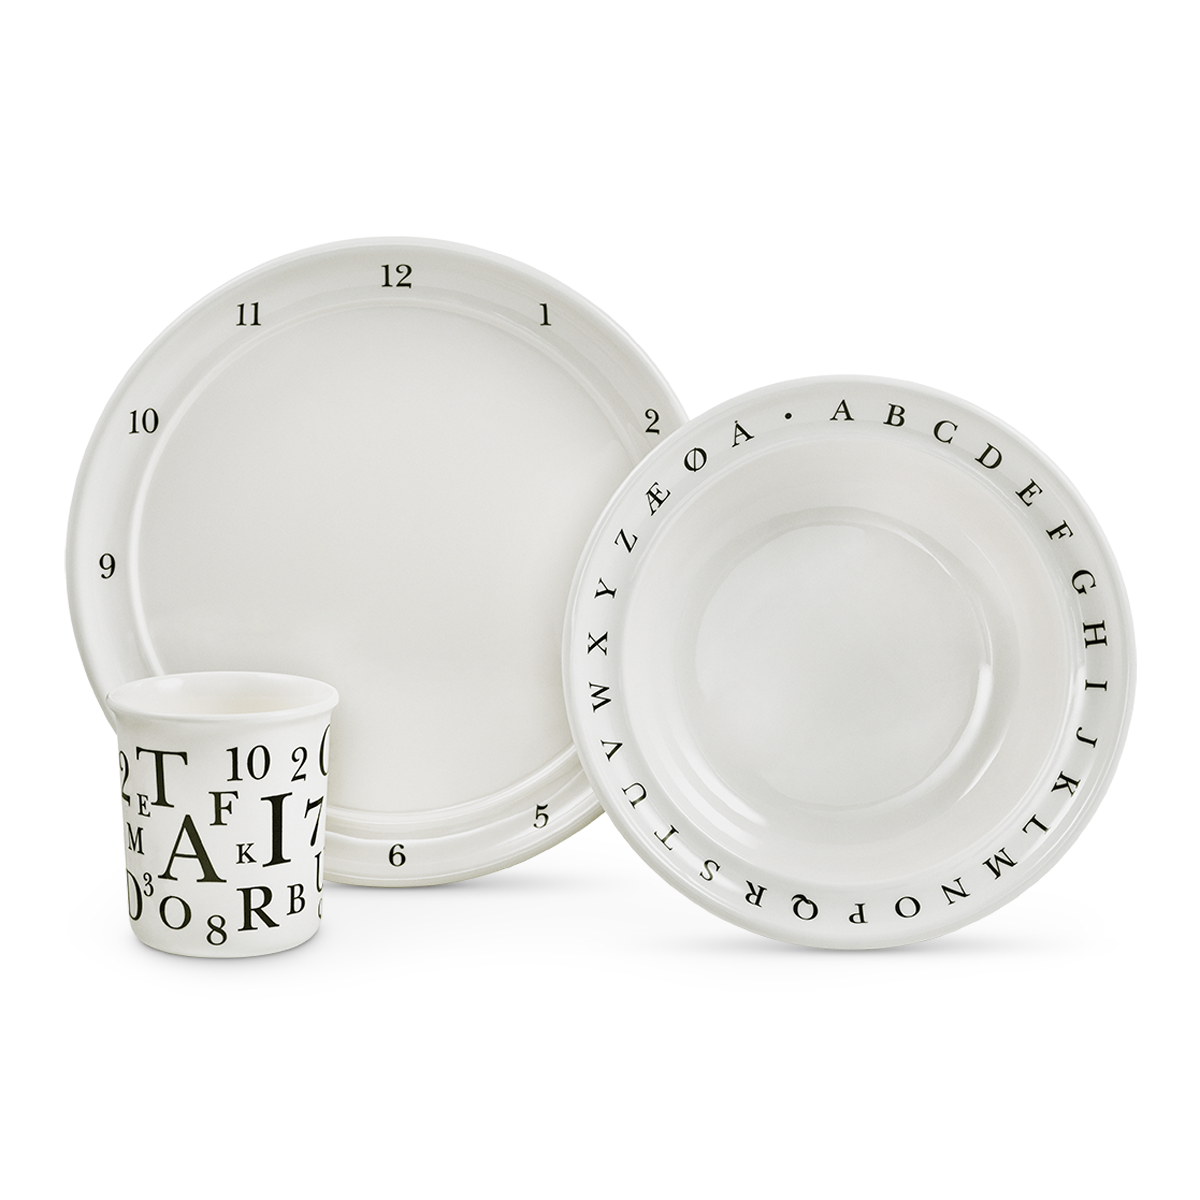 children-s-tableware-set-3-pcs-melamine-kay- ...  sc 1 st  Kay Bojesen & Kay Bojesen Children\u0027s Tableware Set 3 pcs. melamine